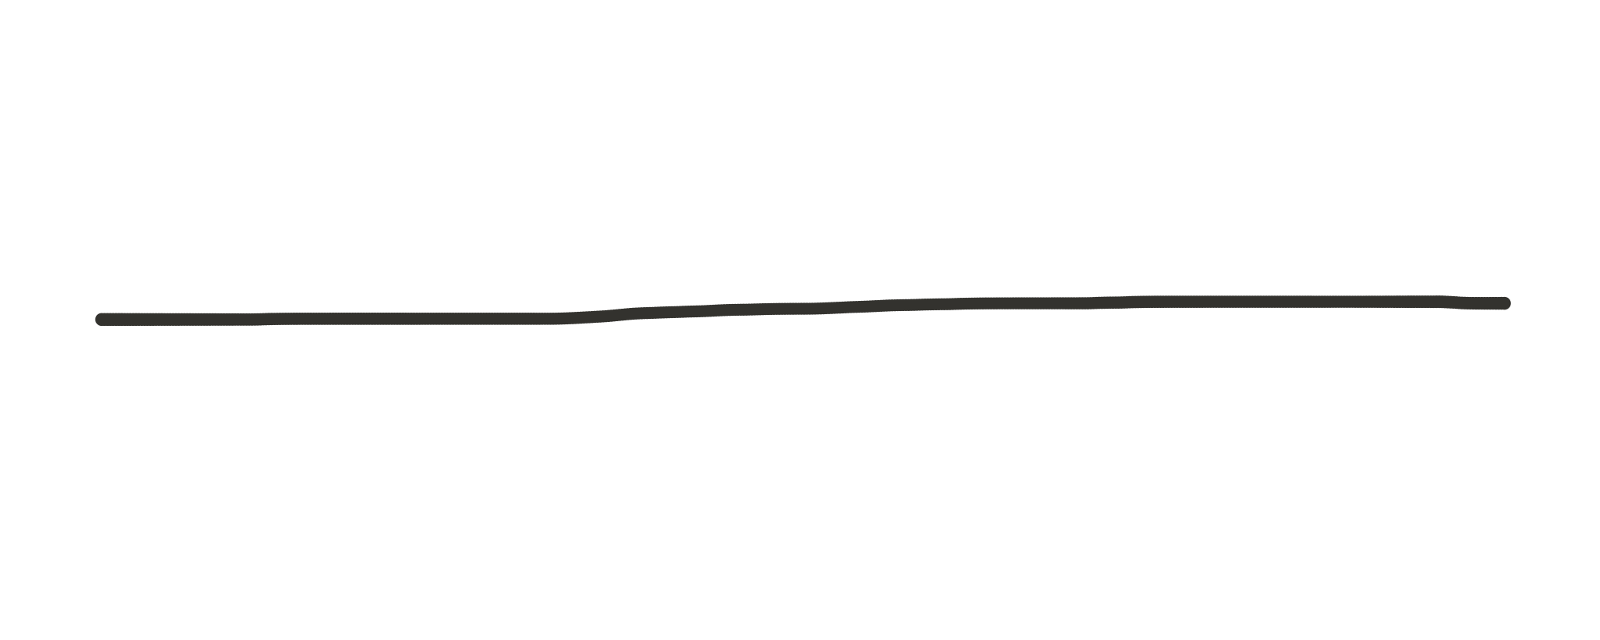 Blank timeline png. Sketchy timelines your personal